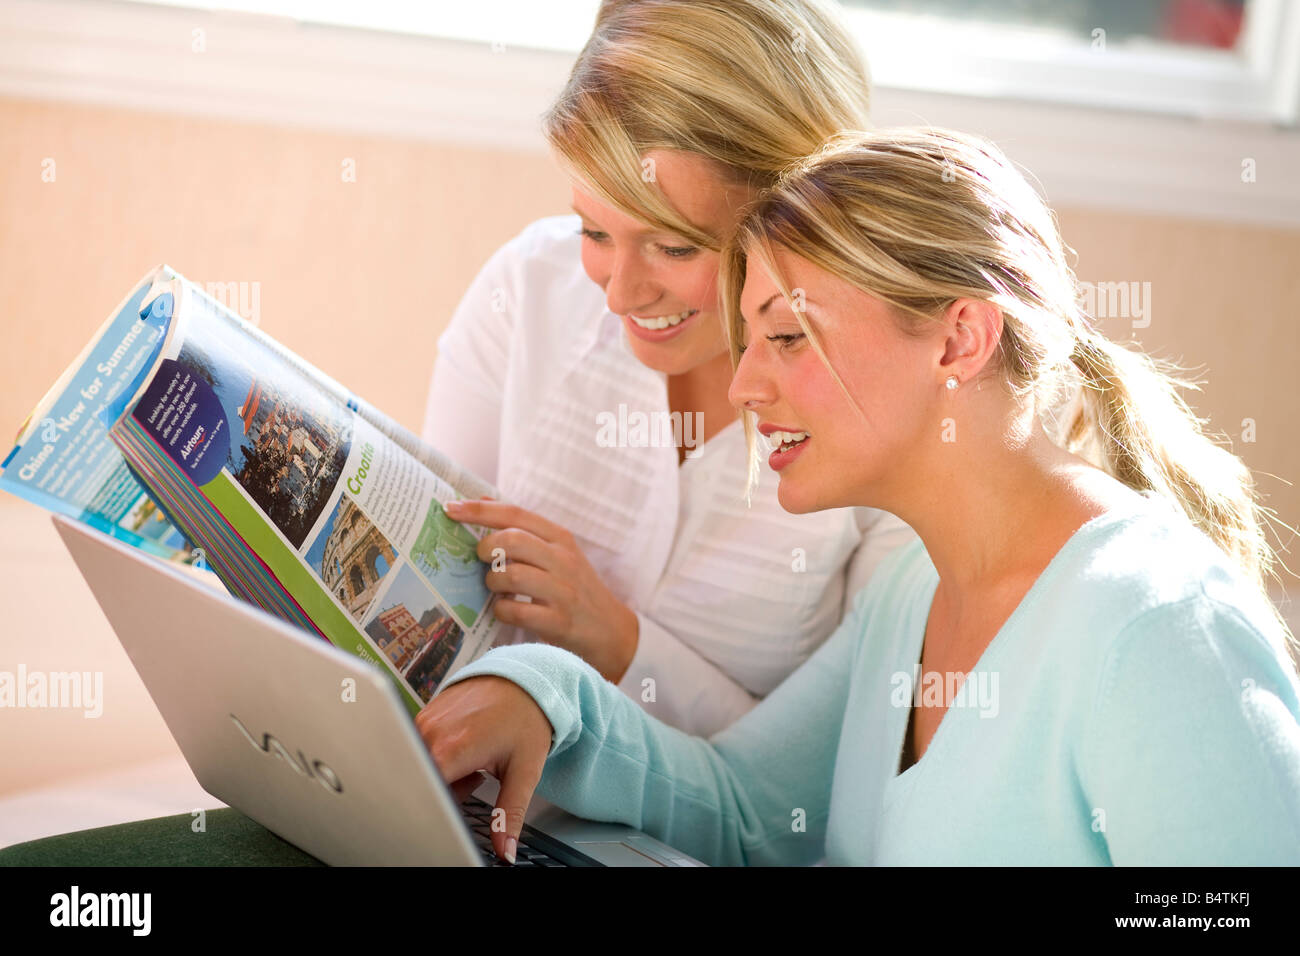 Couple looking at holiday brochures - Stock Image